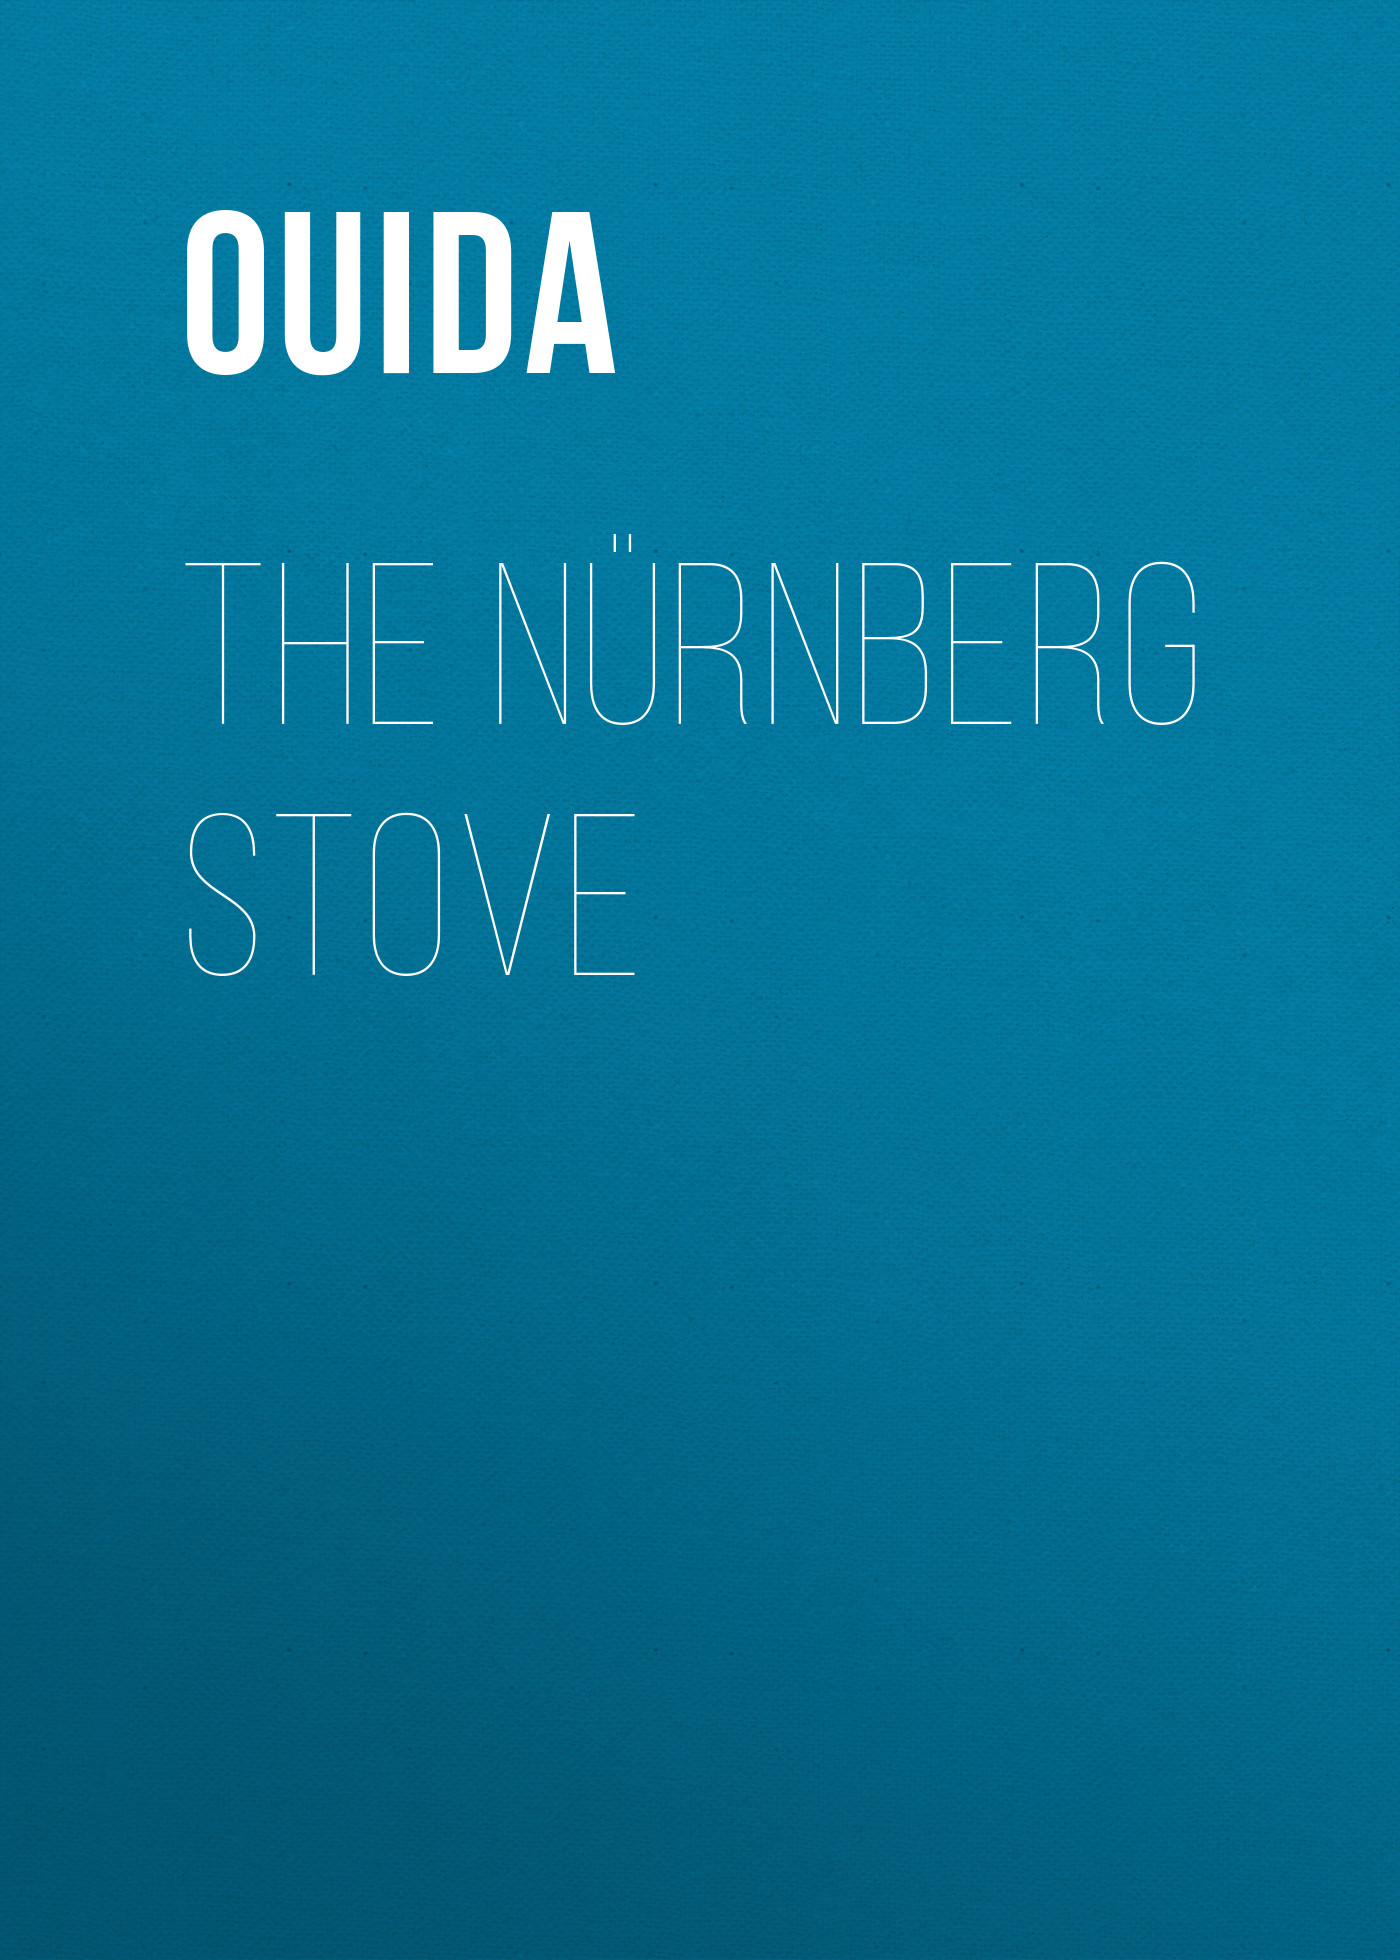 Ouida The Nürnberg Stove